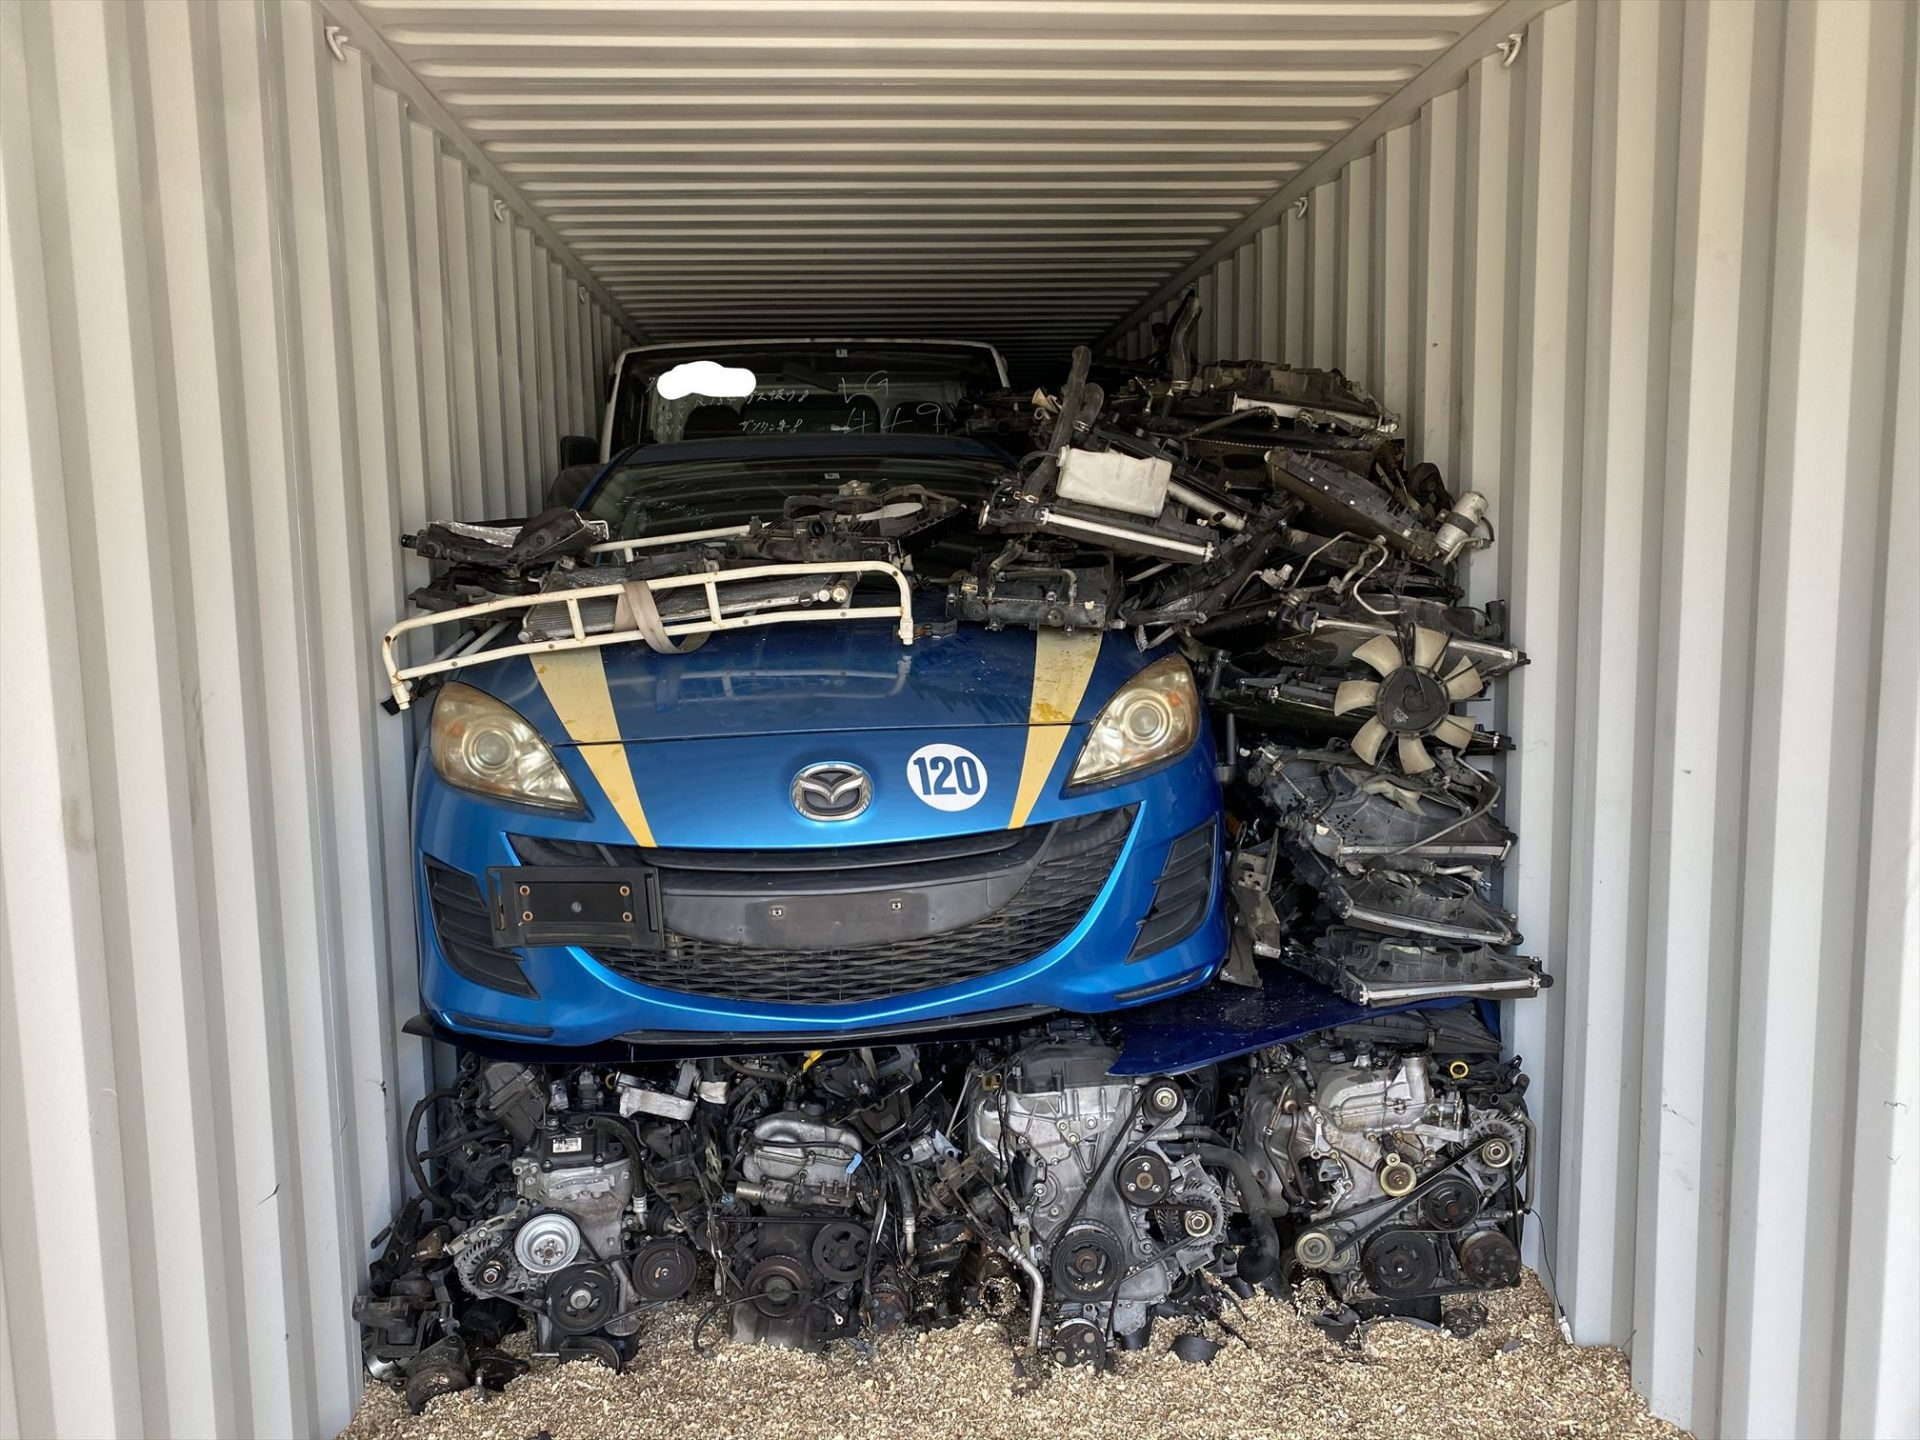 used parts japan, japan used car parts, used car parts, 中古車部品輸出, 中古部品輸